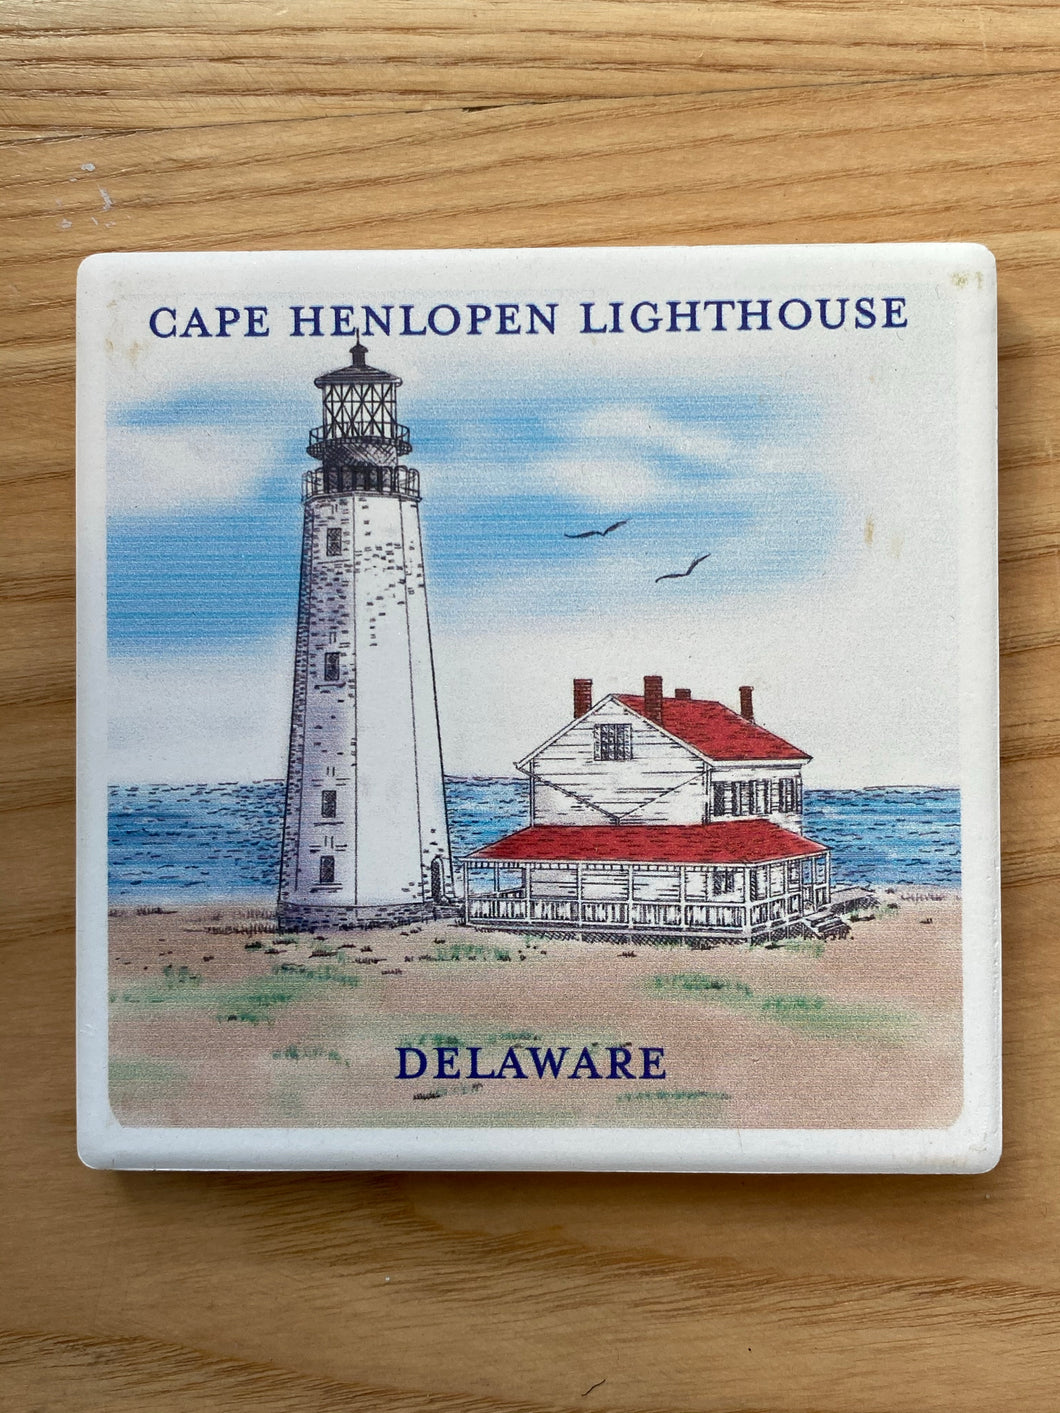 STONE COASTER CAPE HENLOPEN LIGHTHOUSE